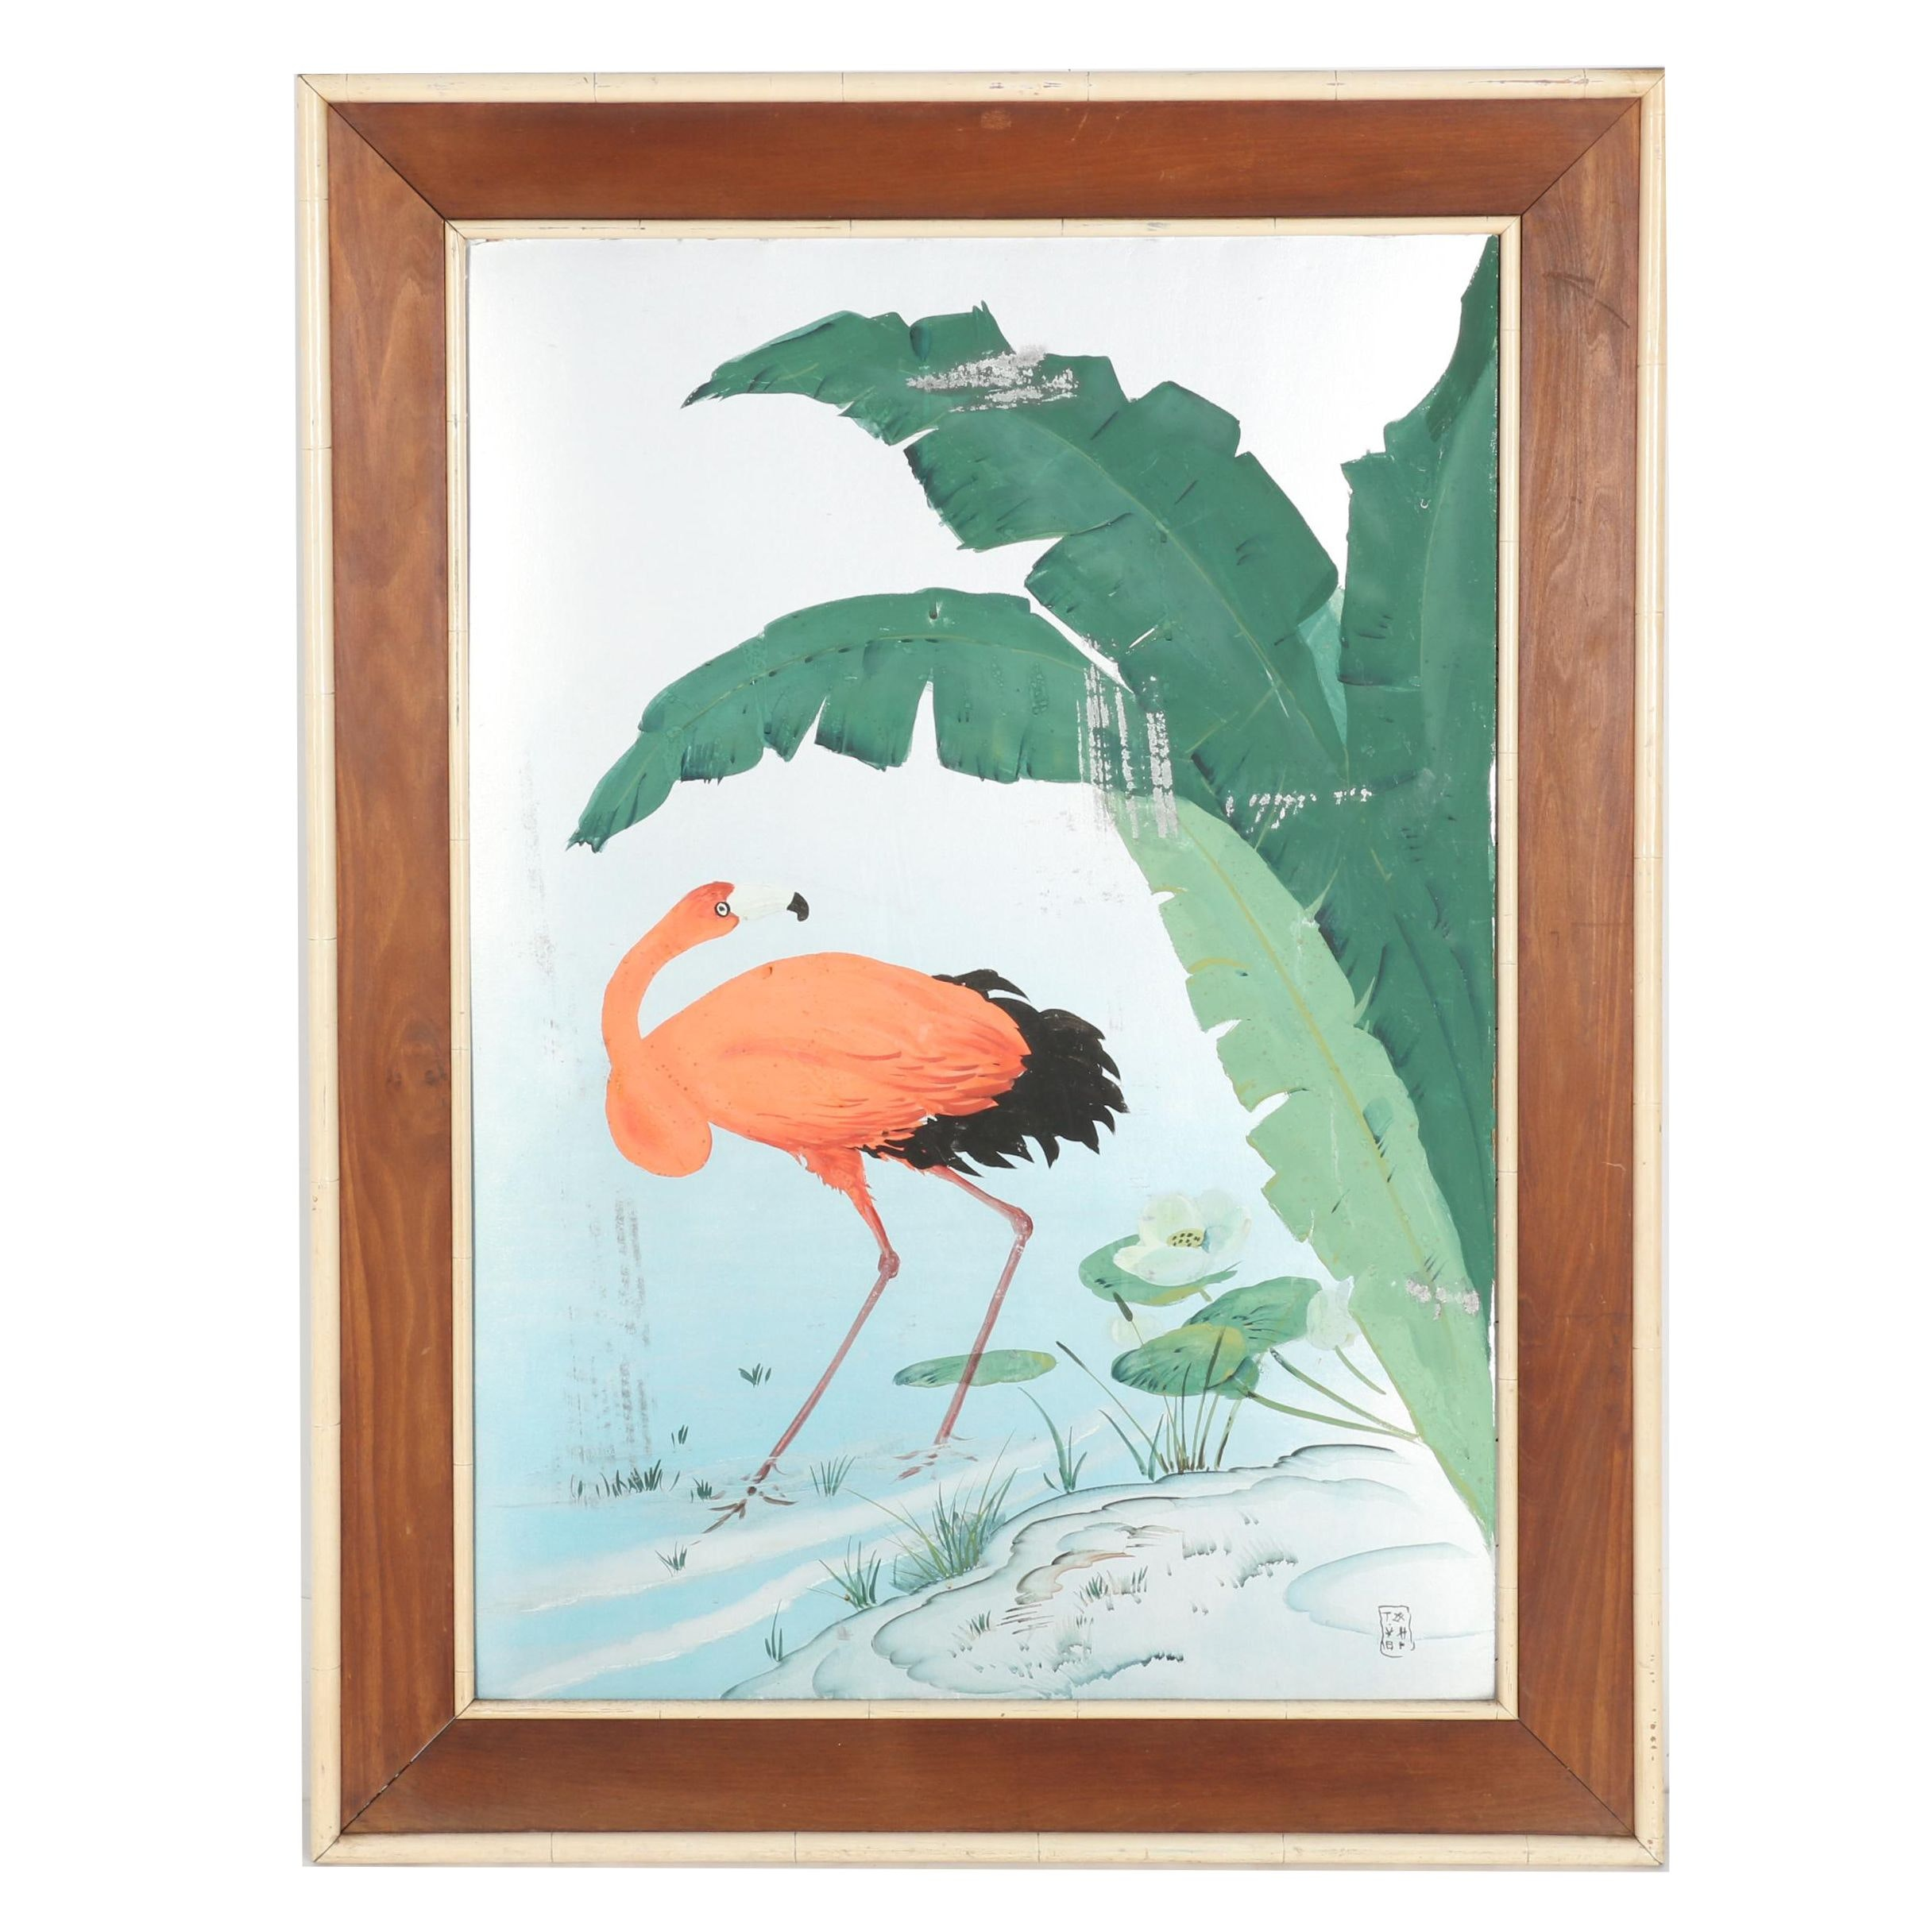 Gouache Painting on Cardboard of a Flamingo Under Tall Leaves